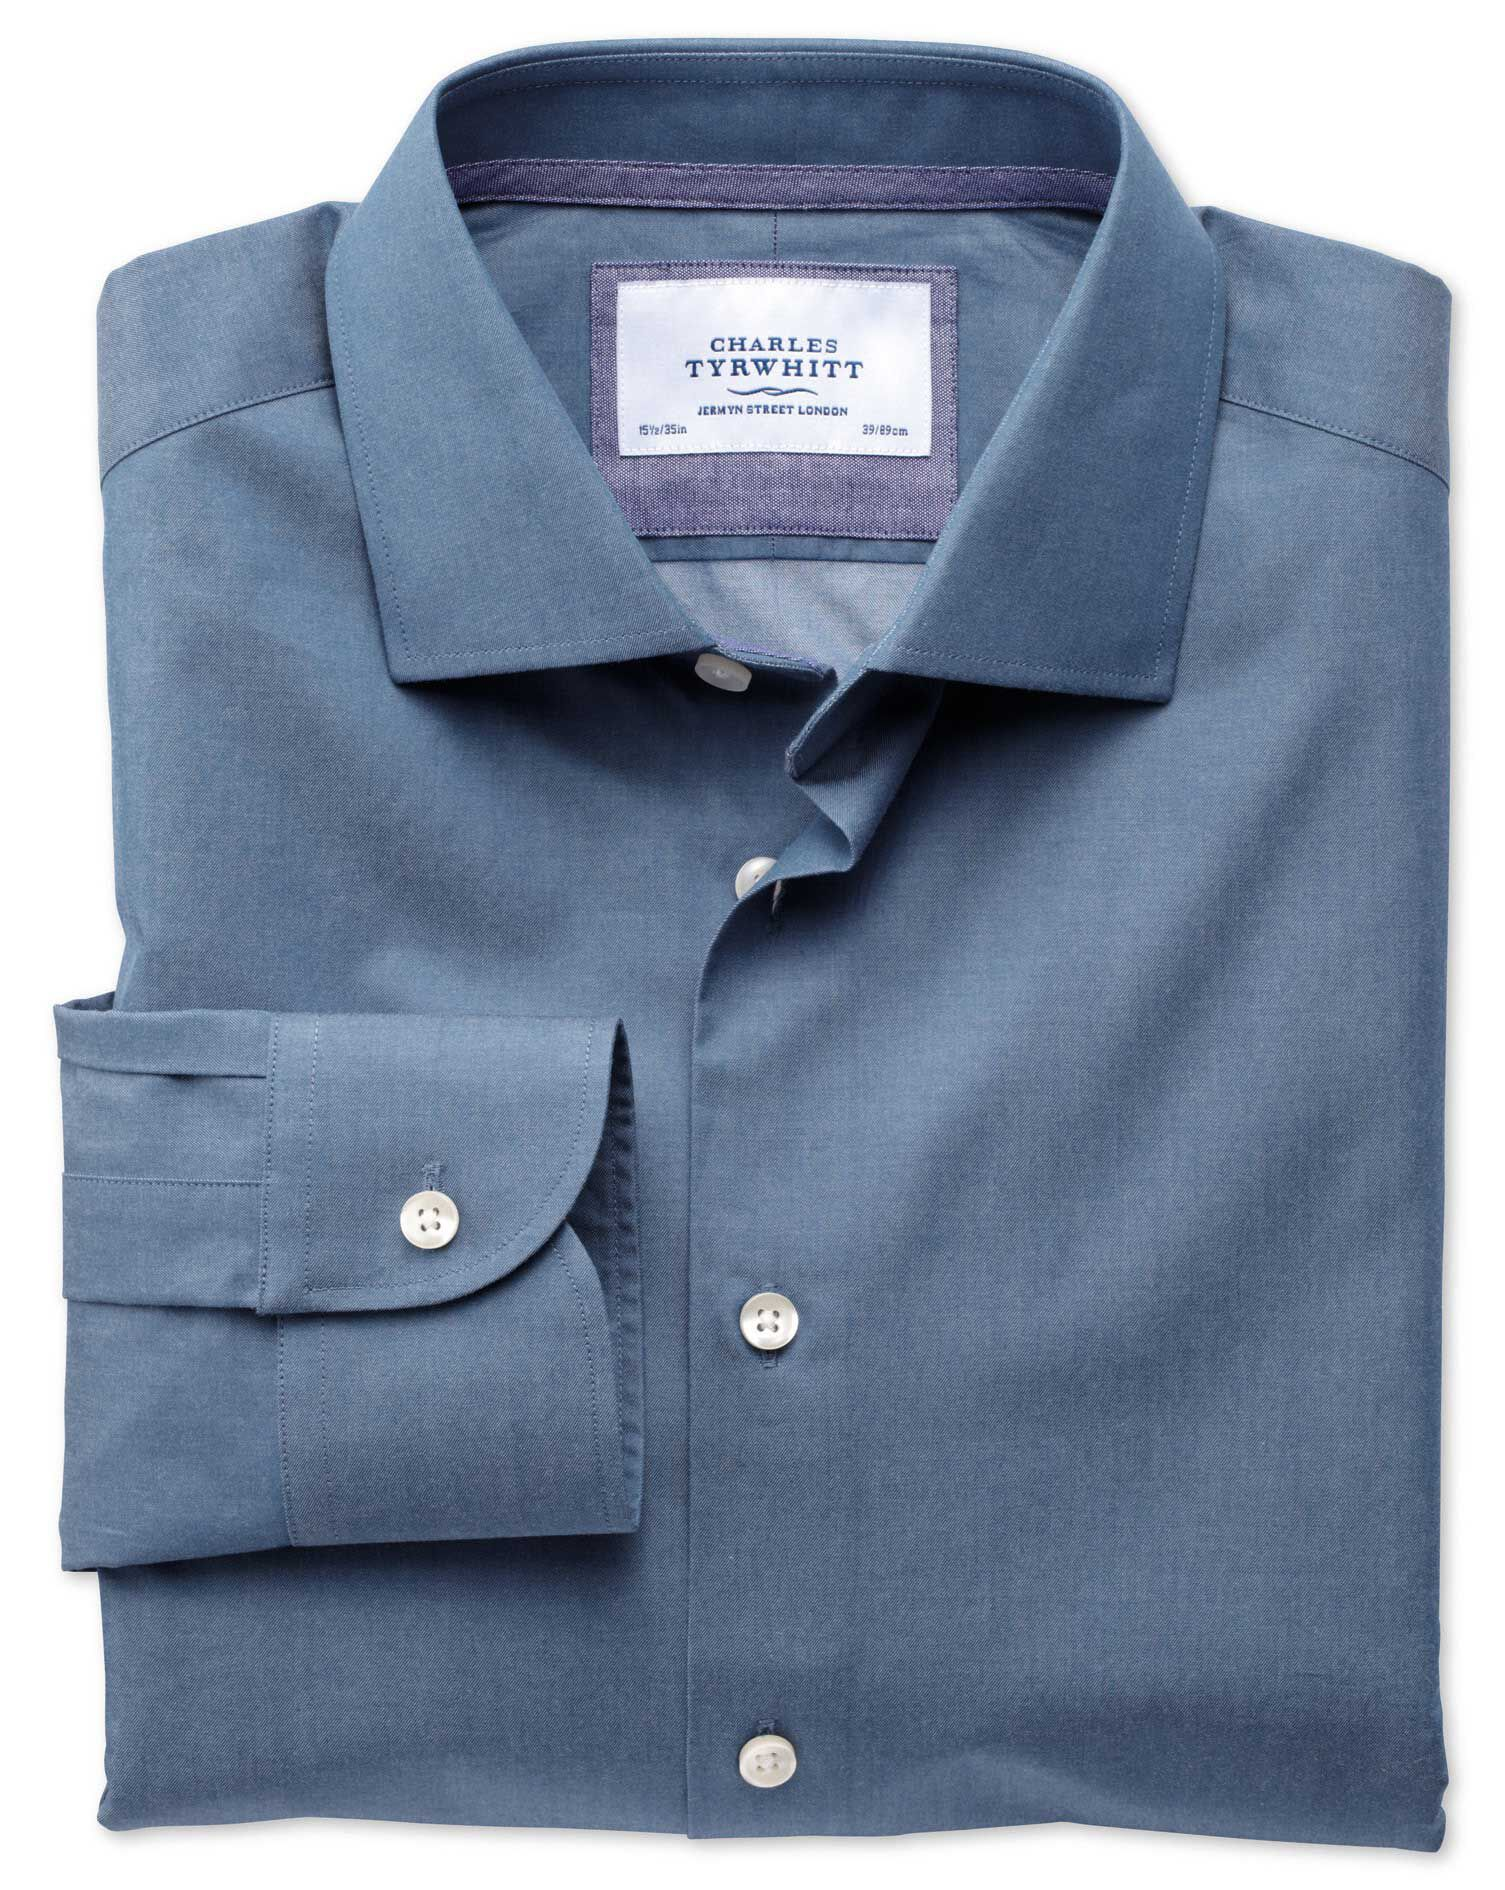 Extra Slim Fit Semi-Cutaway Collar Business Casual Indigo Cotton Formal Shirt Single Cuff Size 16/33